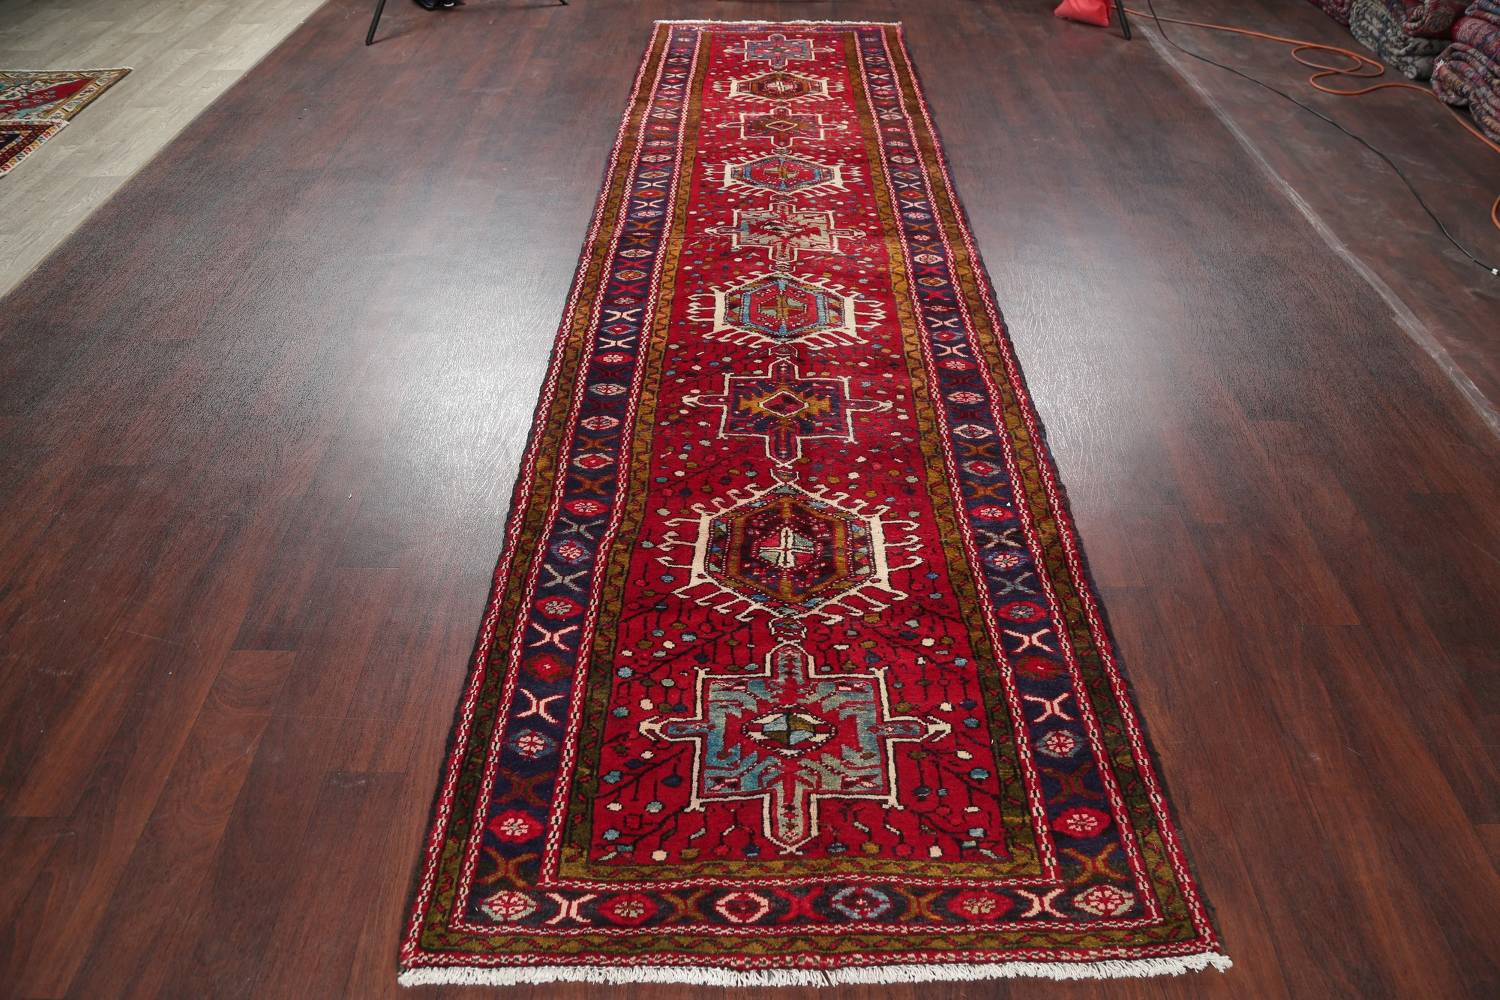 One-of-a-Kind Red Geometric Heriz Persian Hand-Knotted 4x13 Wool Runner Rug image 15